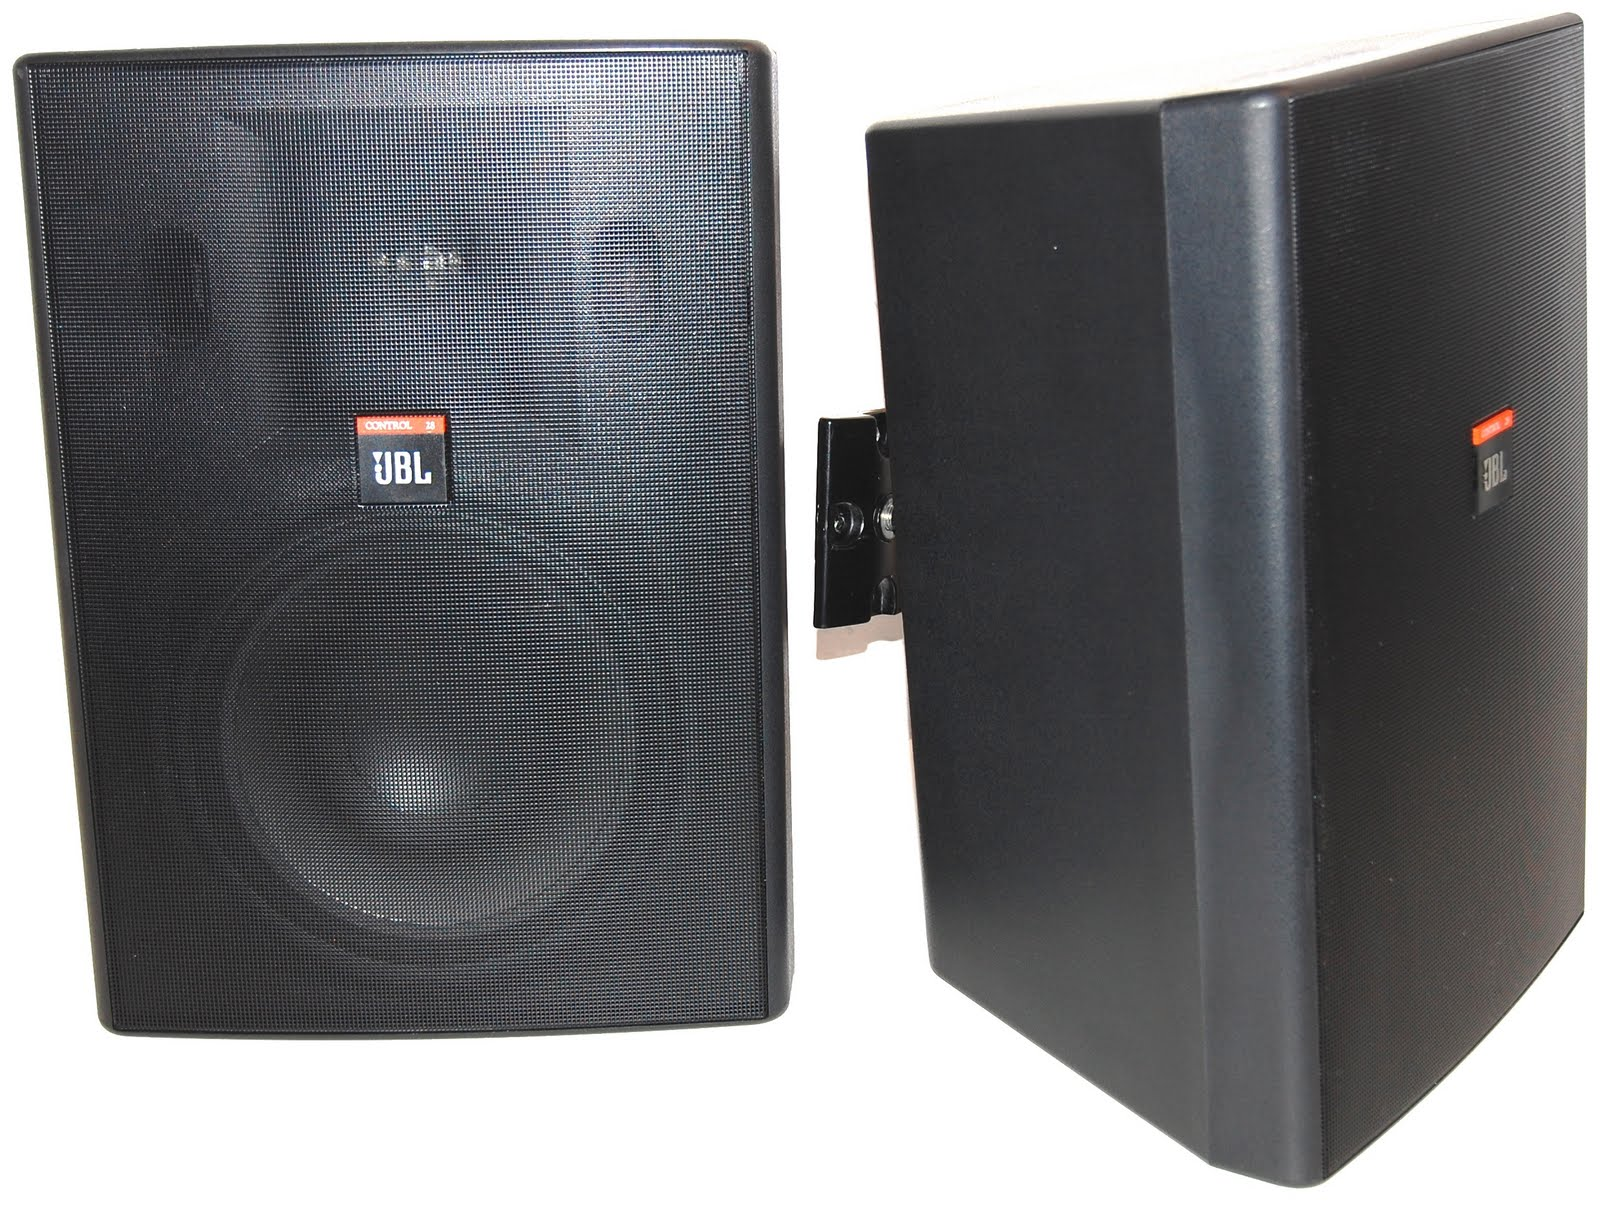 Jbl Control 28 >> Rewind Audio: What's NEW with REWIND?